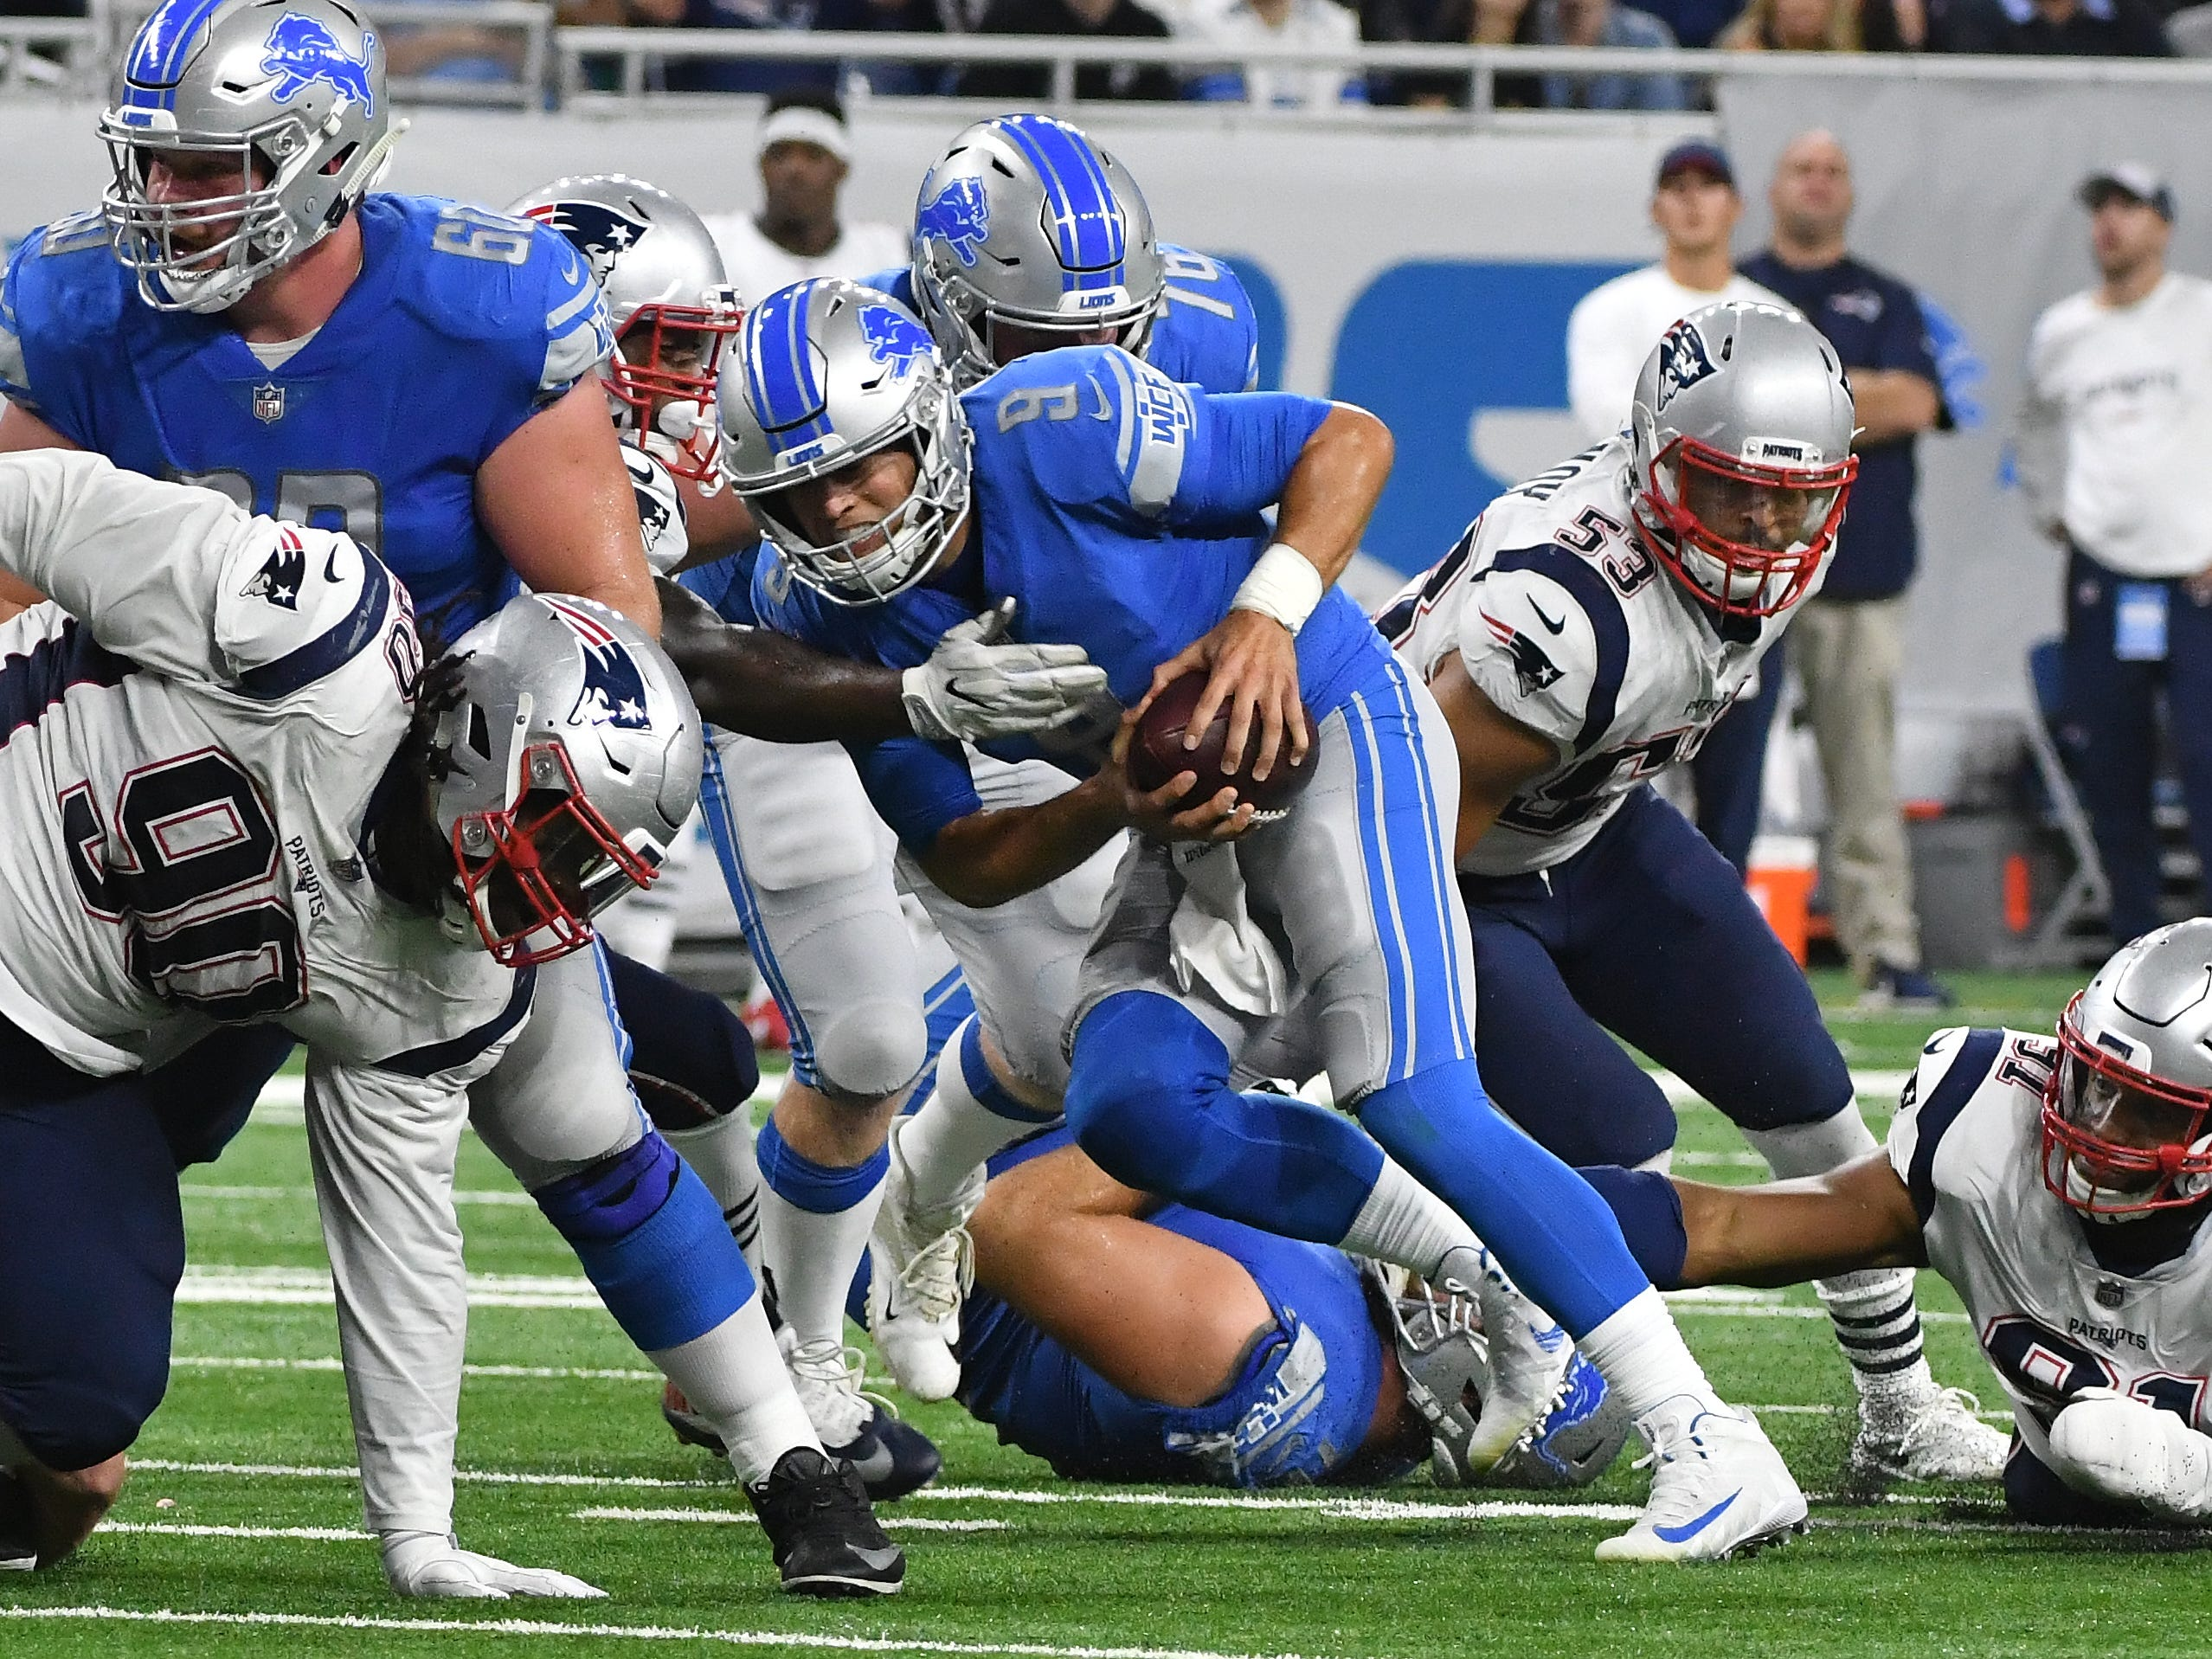 Lions quarterback Matthew Stafford scrambles out of pressure and throws a completion in the second quarter.